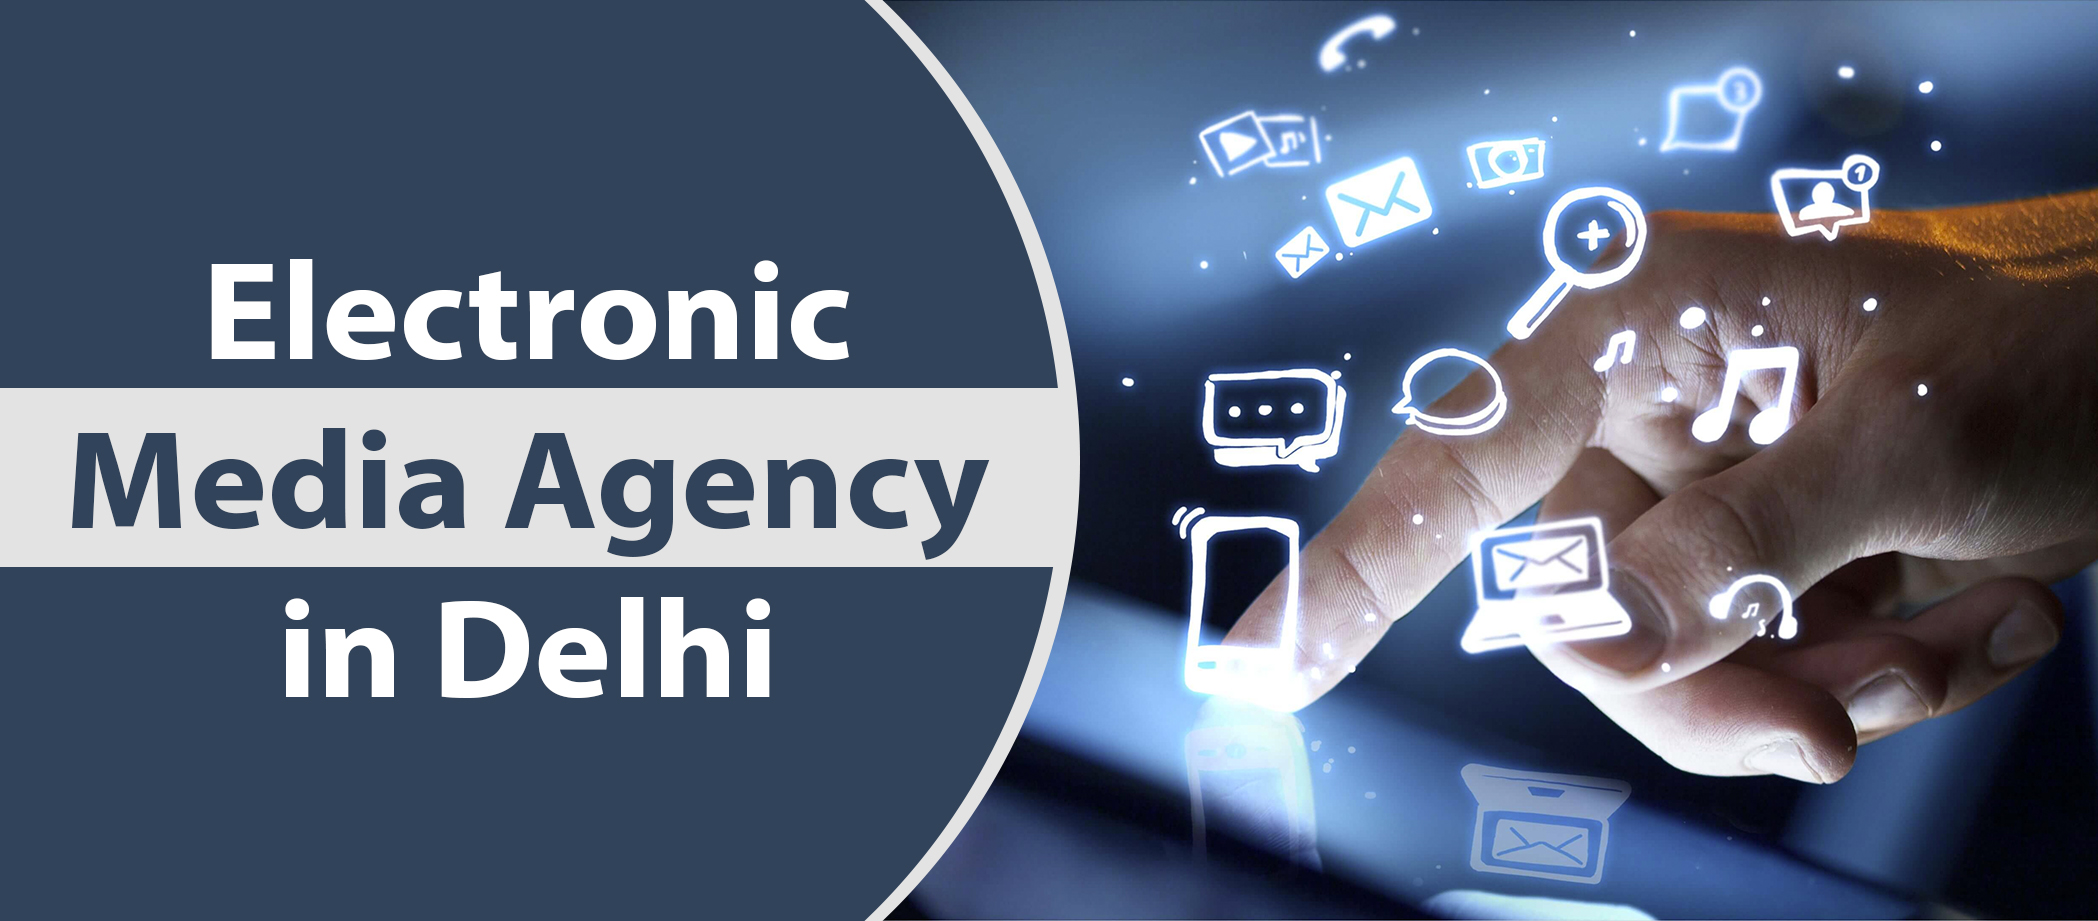 Electronic media agency in delhi